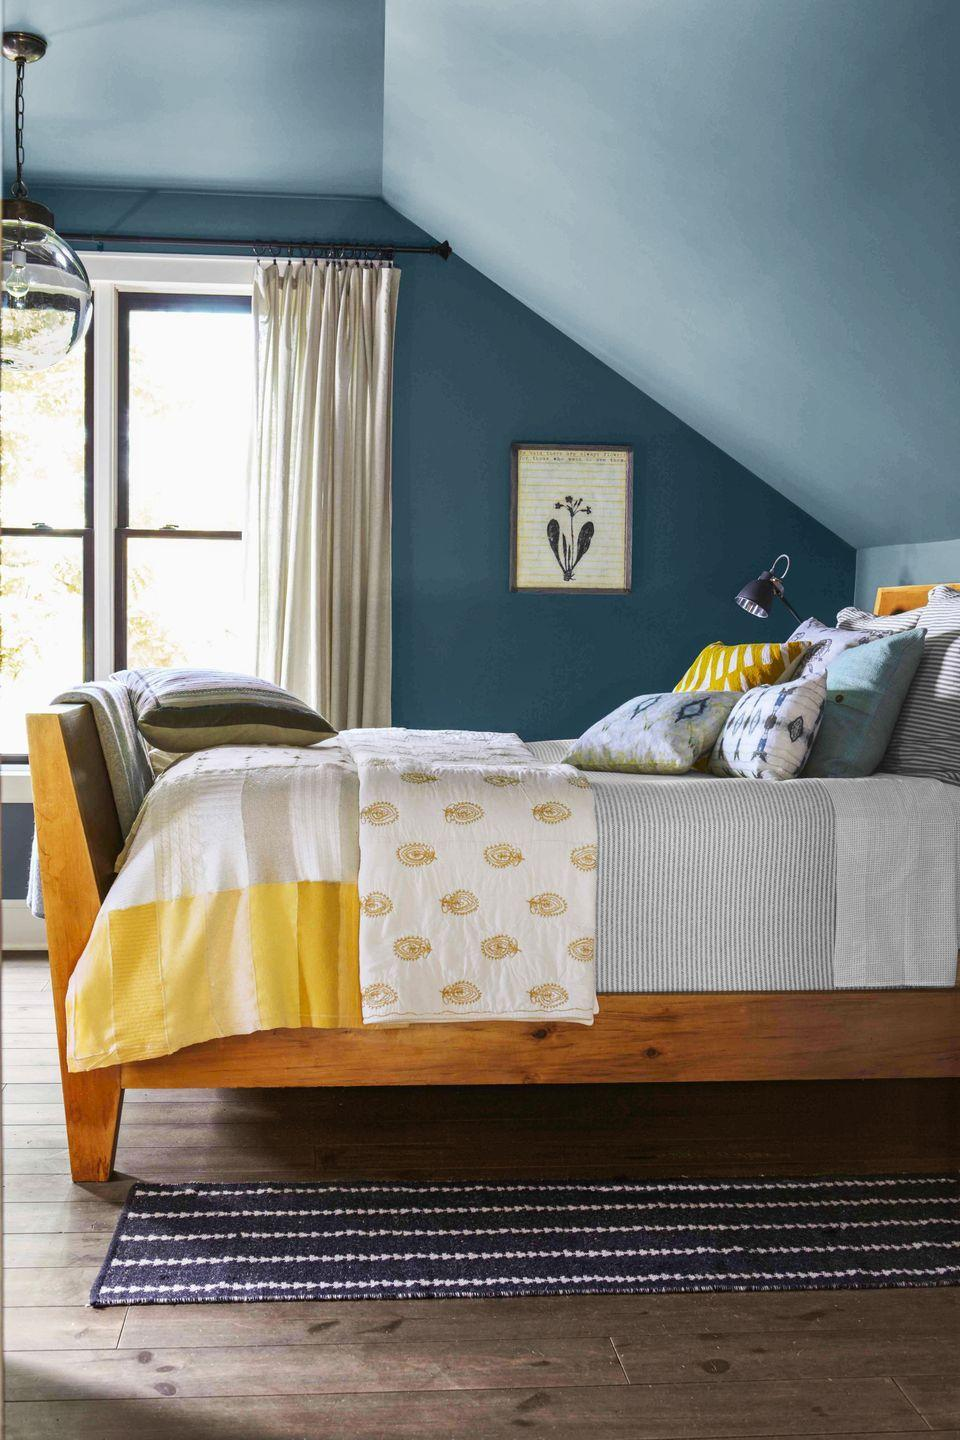 <p>Extending paint from the walls up onto the eaves and overhead makes this top-floor room extra cozy. The blue hue and yellow bedding prove opposites attract too. </p>